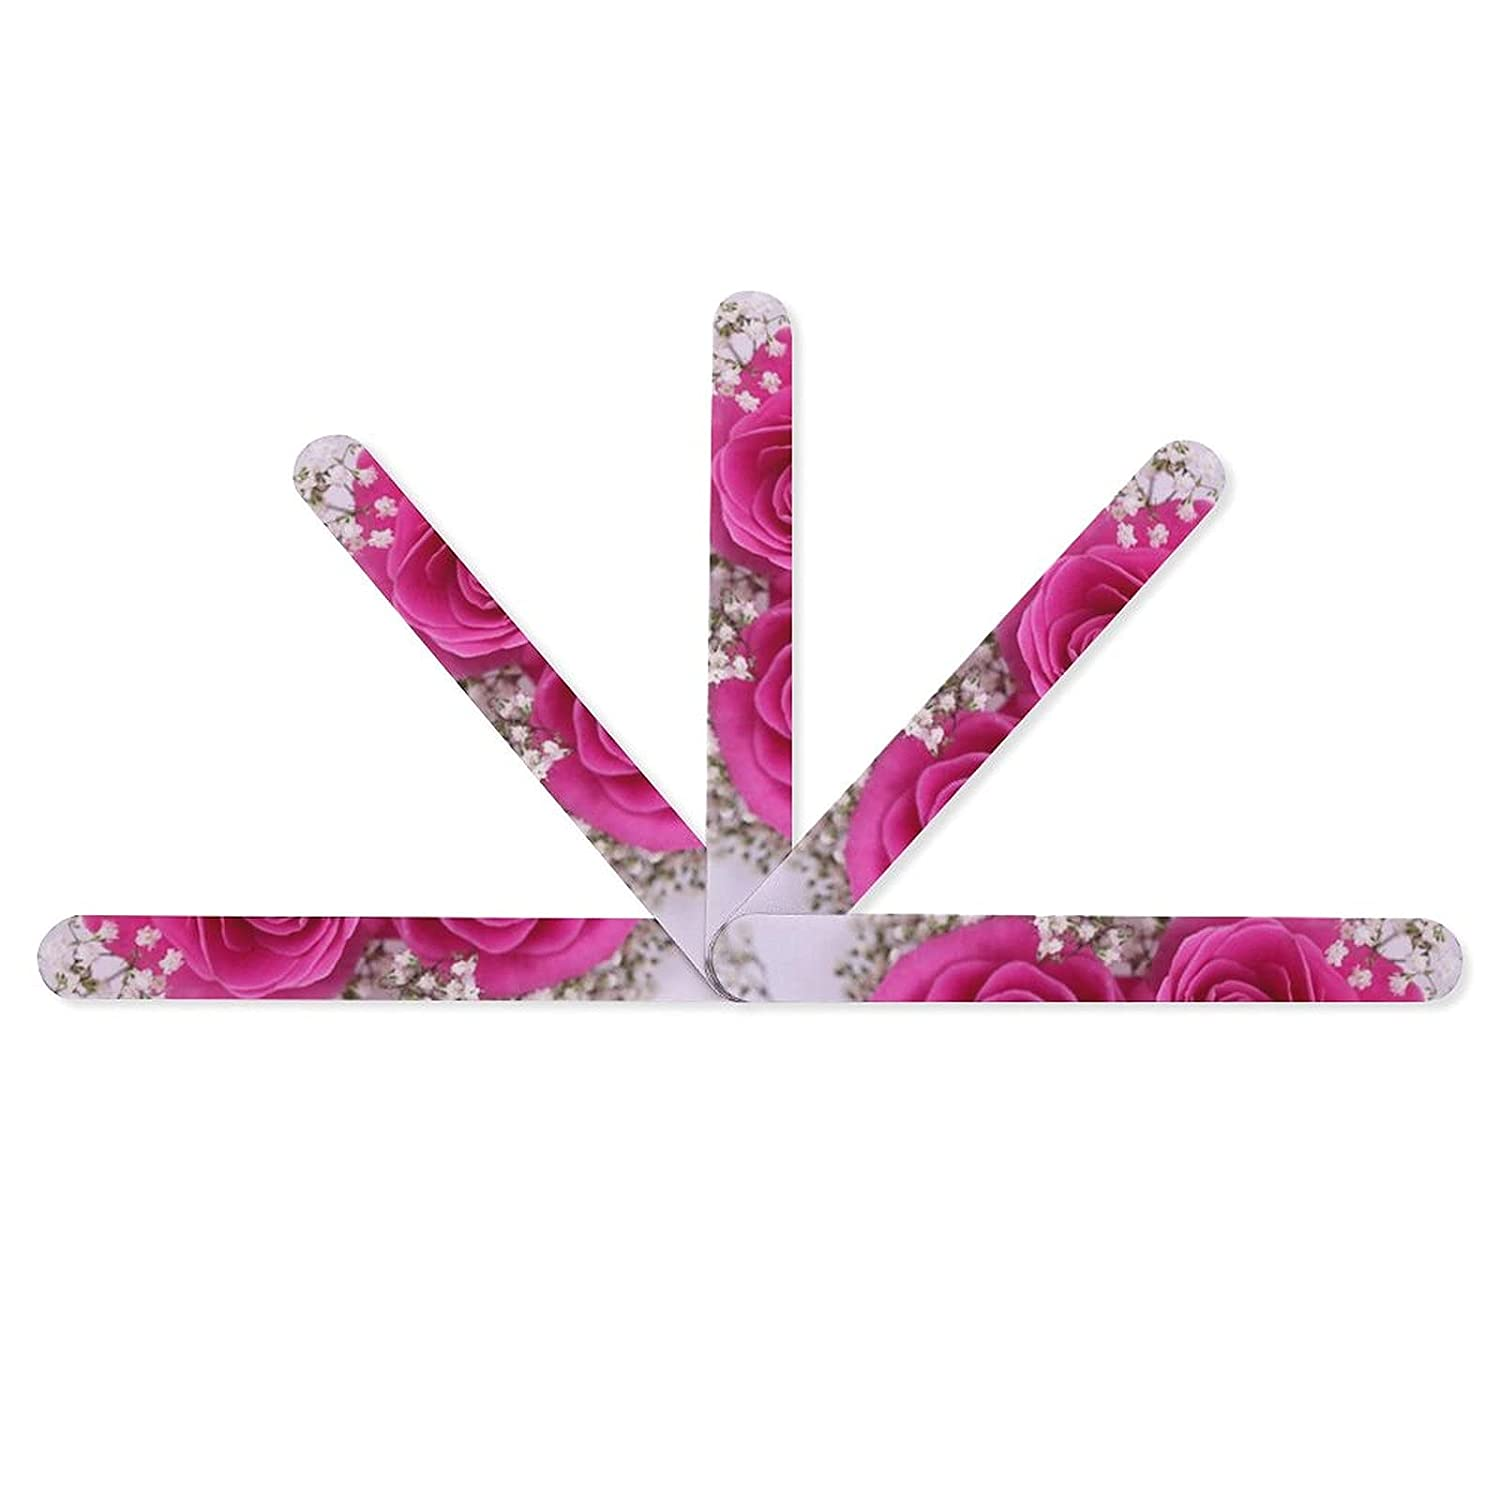 Floral Blooming Flower Water Nail Double Ranking integrated 1st place Professional 5 File PCS Sales